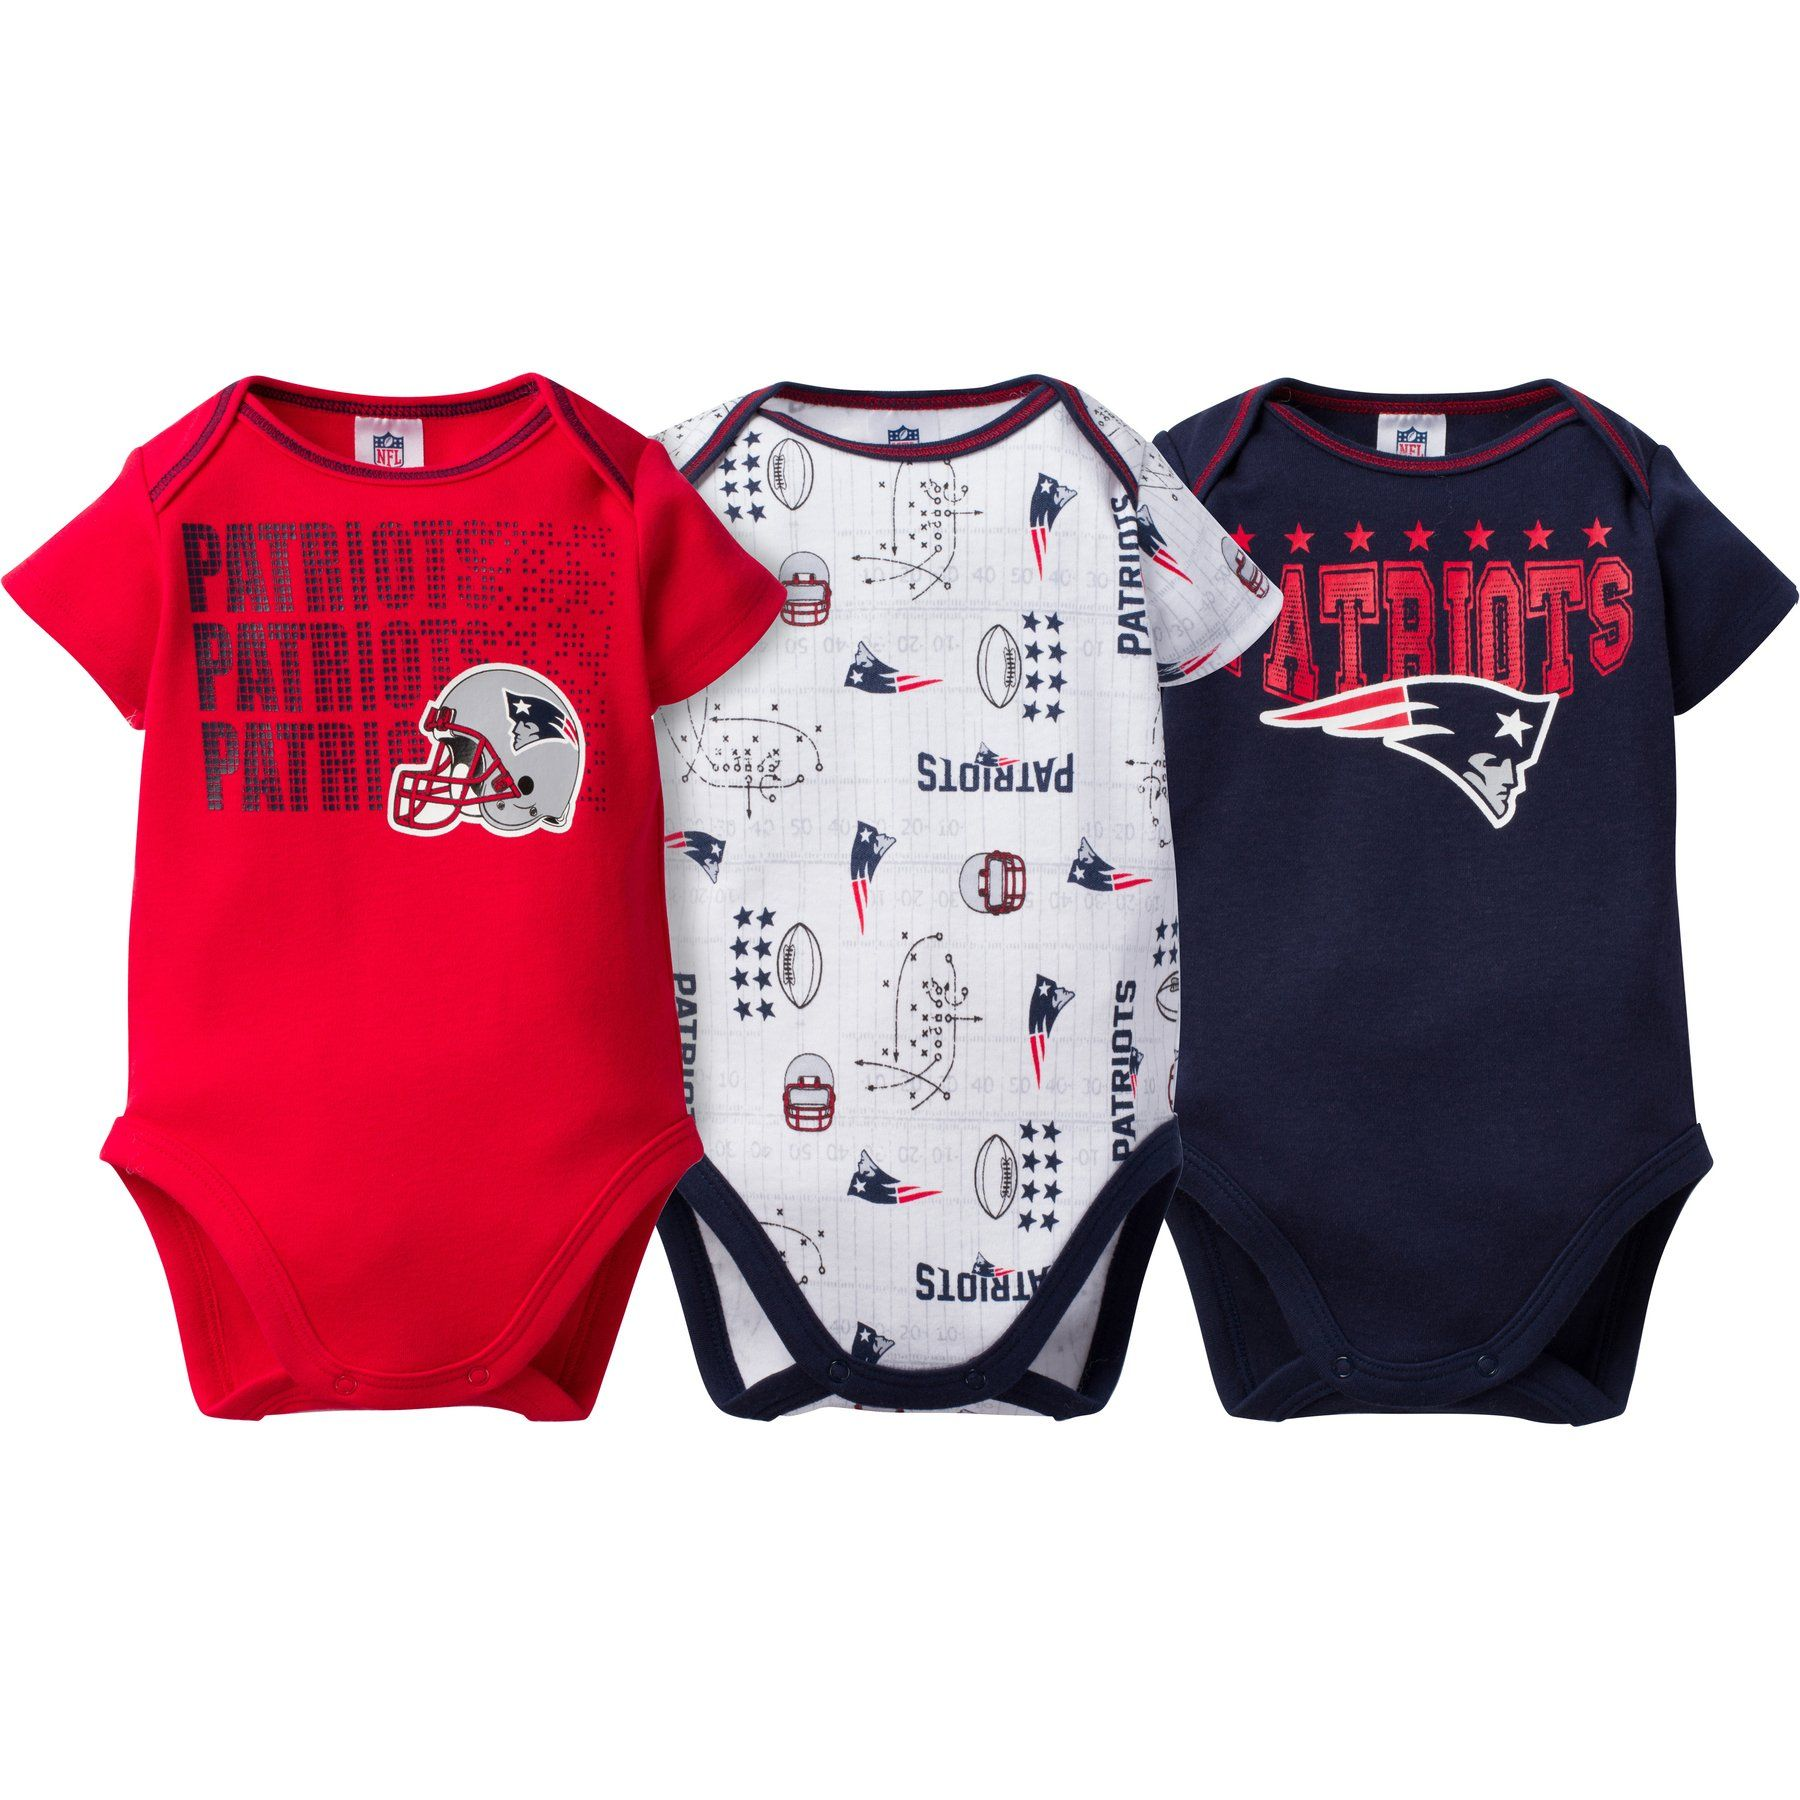 29 New England Patriots Baby Ideas Baby Toddler Clothing Patriots New England Patriots